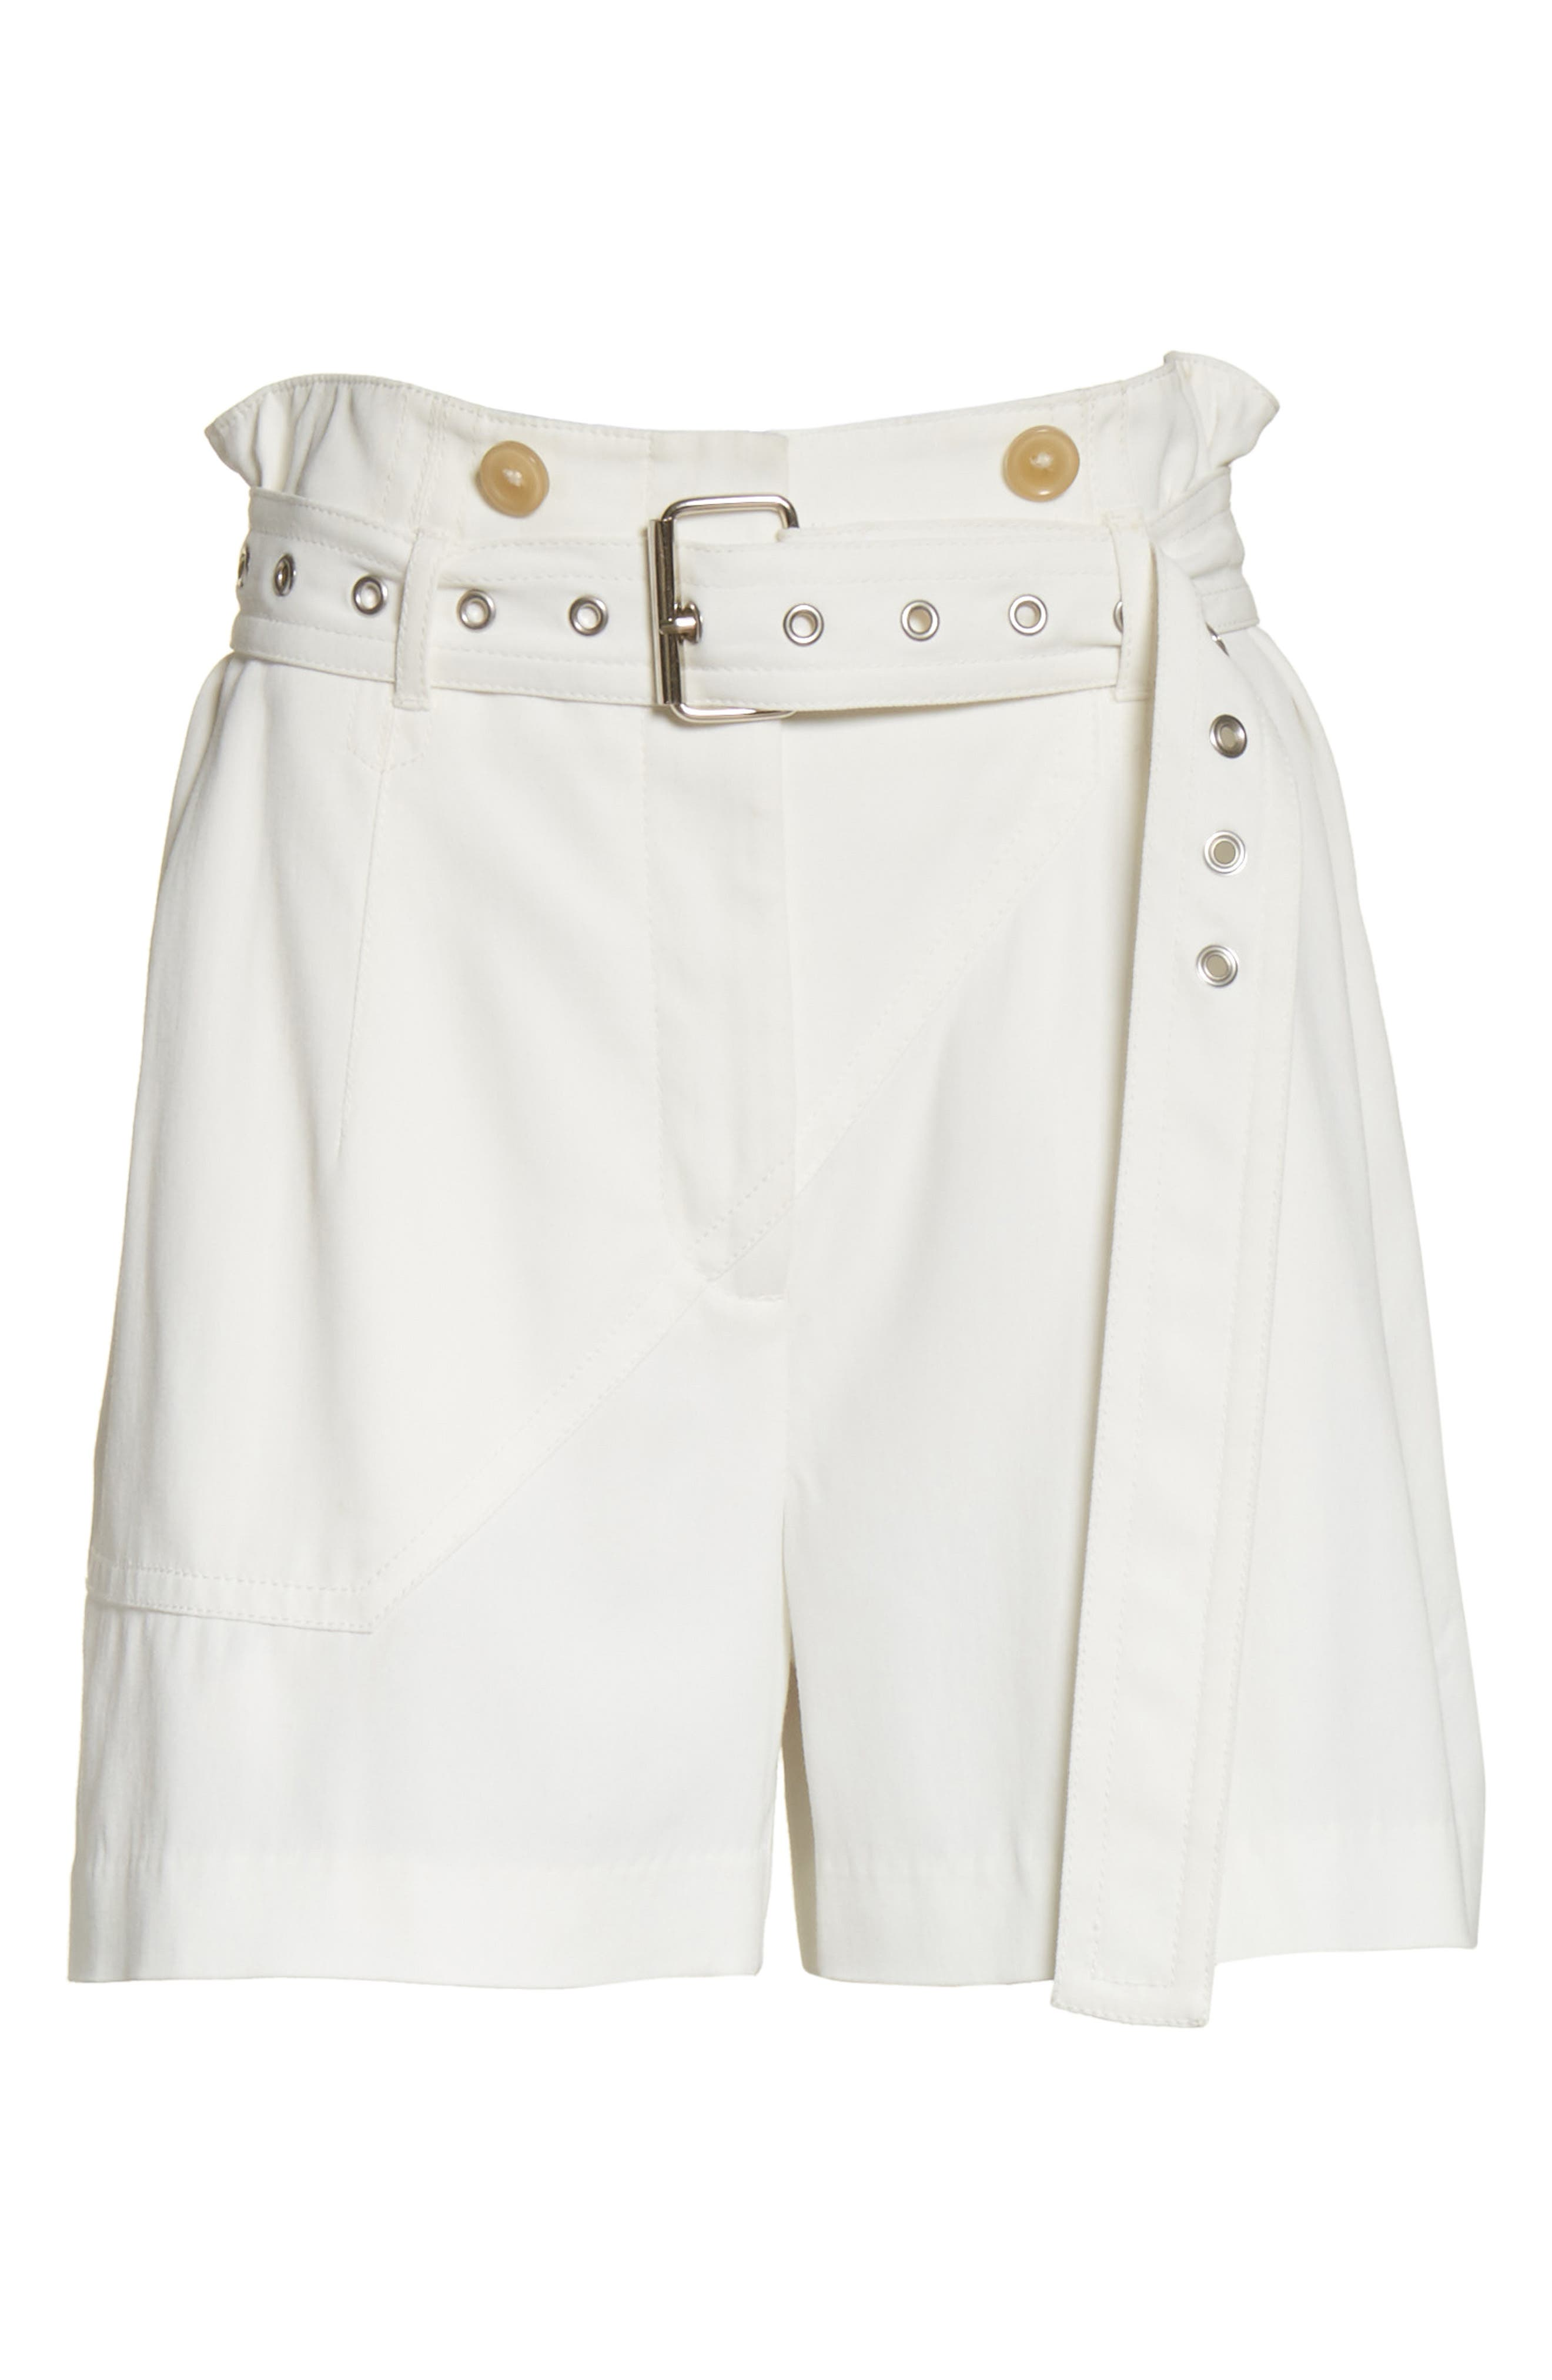 Belted Utility Shorts,                             Alternate thumbnail 6, color,                             Ivory